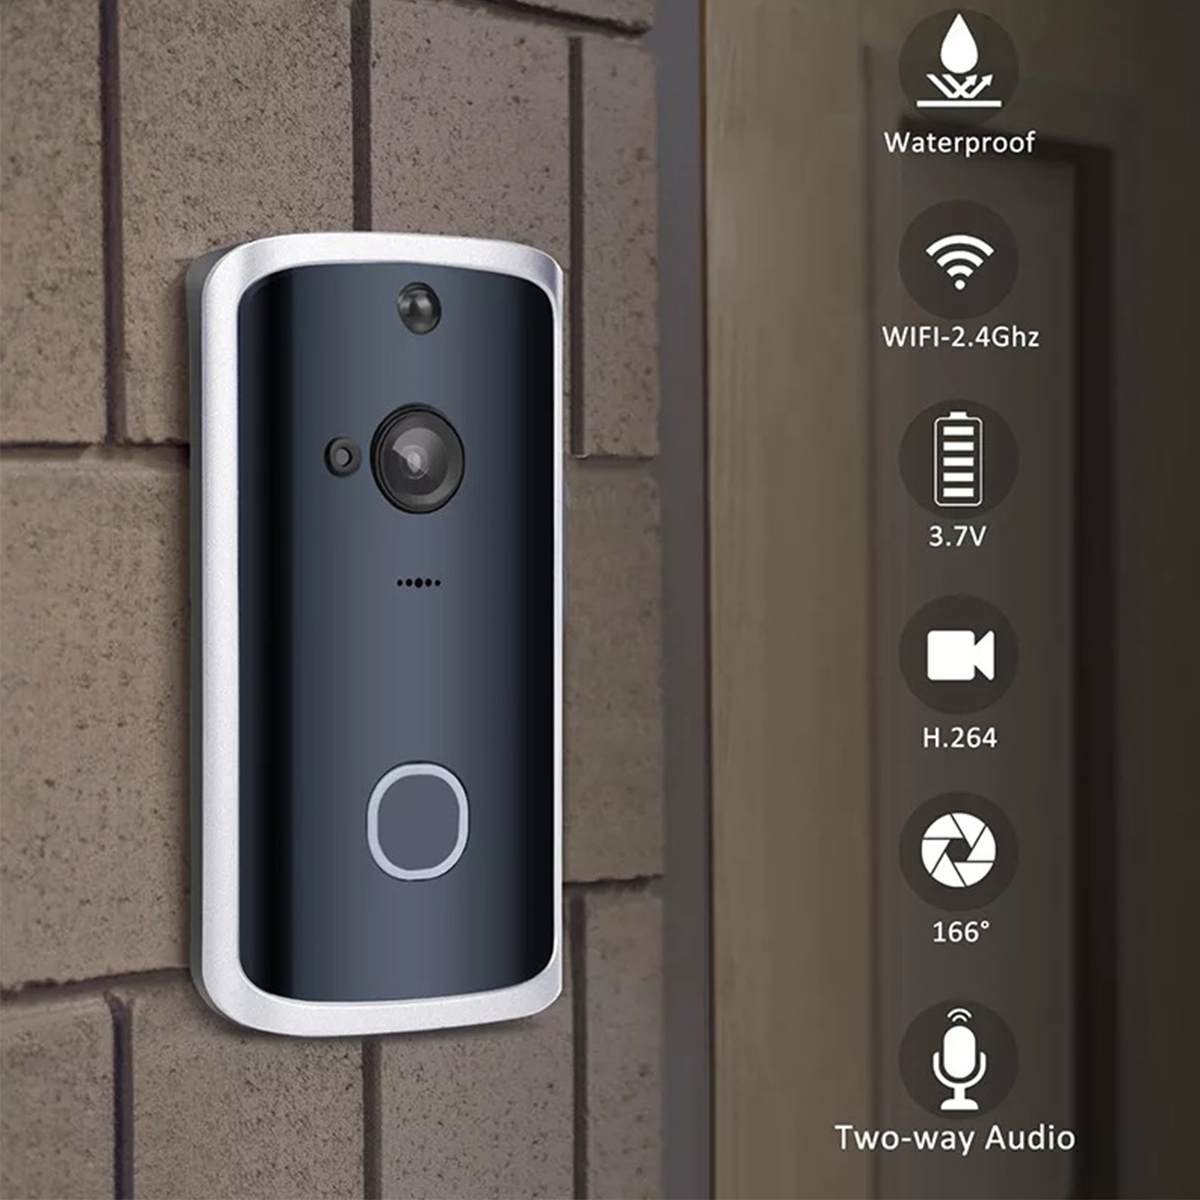 Video Doorbell Intercom Camera Phone Wifi Smart Home-Security Ding-Dong-Receiver APP